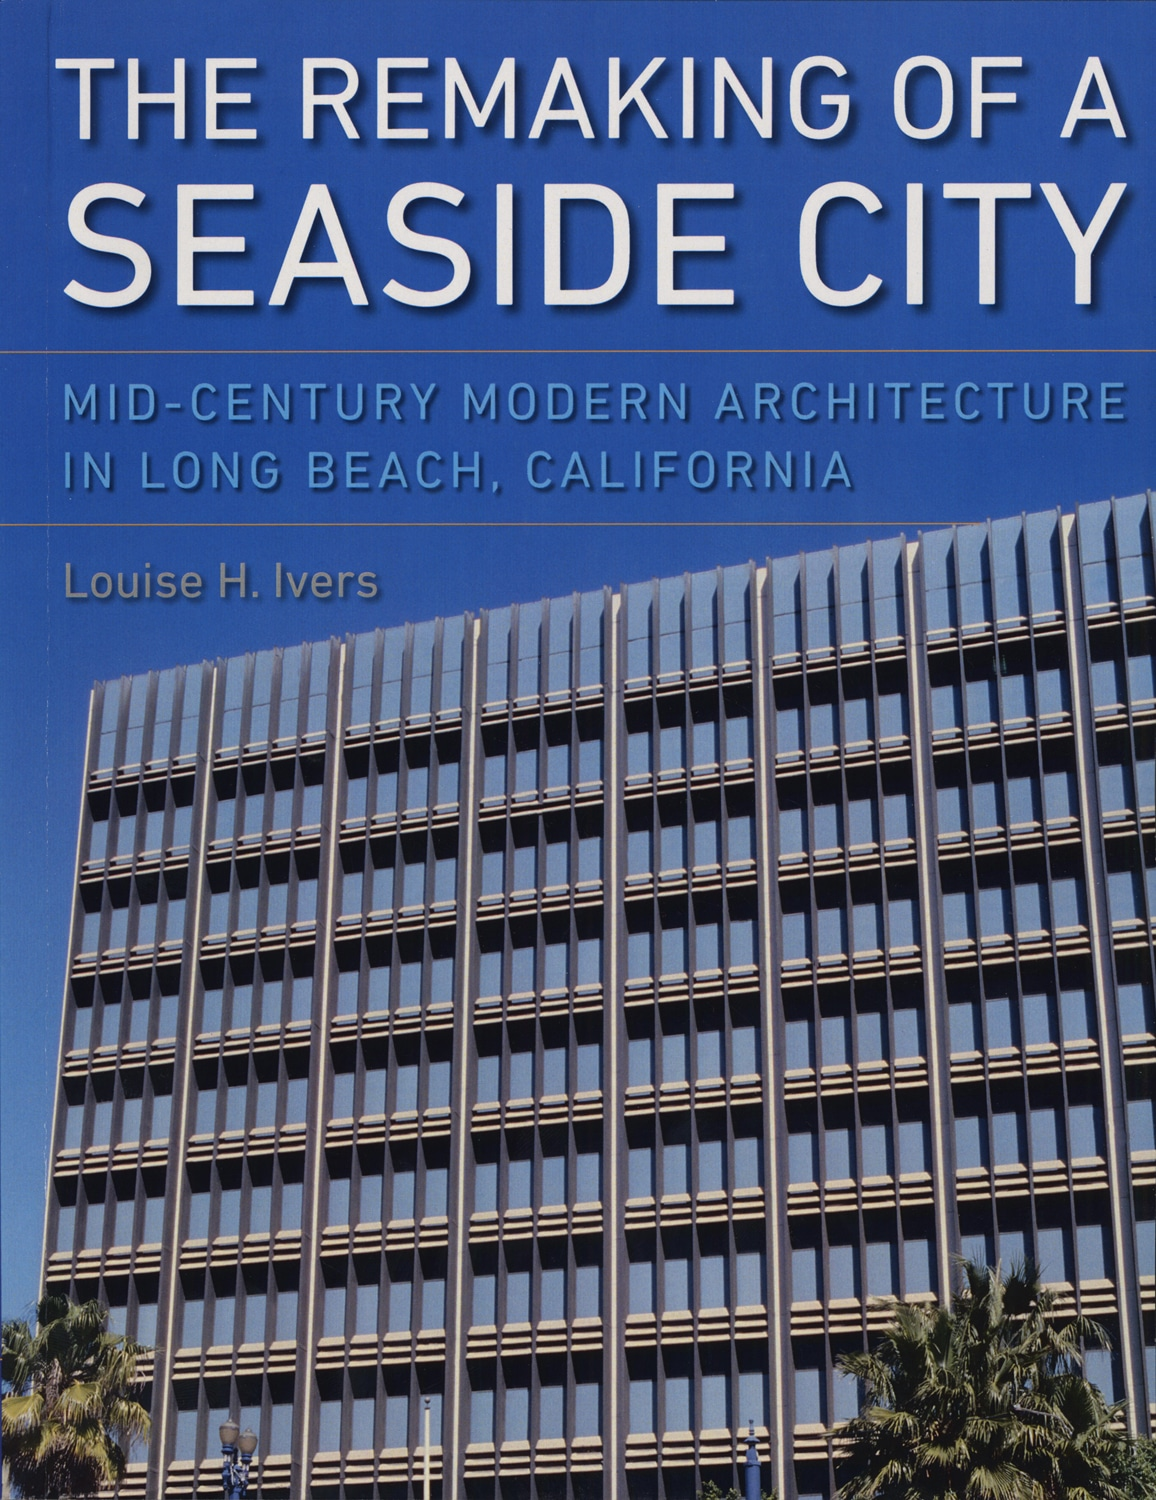 The remaking of a seaside city